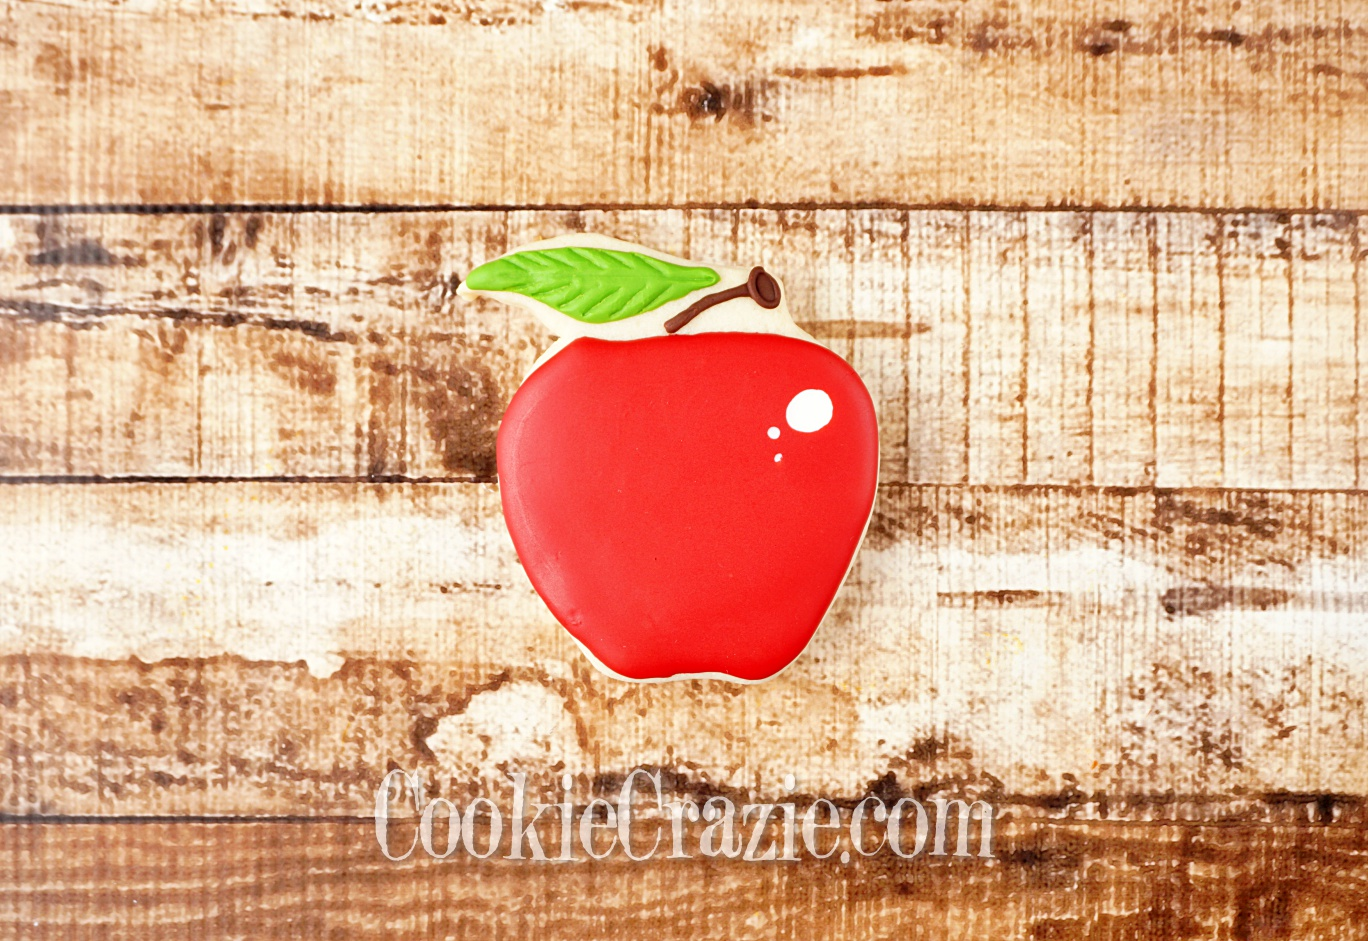 Apple Decorated Sugar Cookie YouTube video  HERE